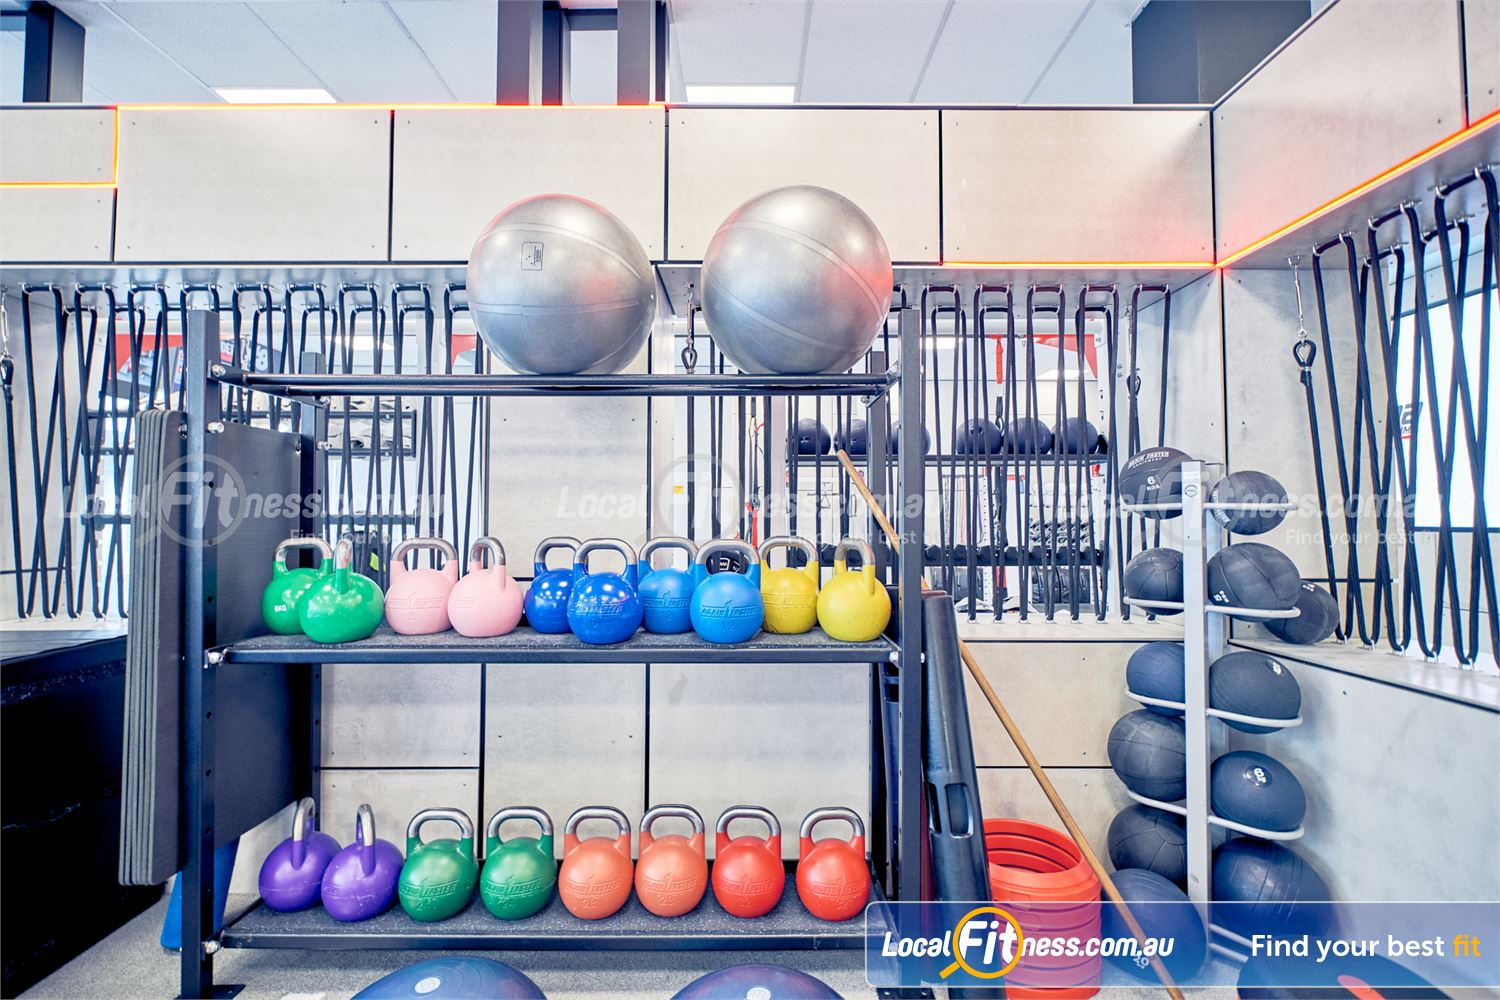 Goodlife Health Clubs Knox City Near Knoxfield Our functional training area is fully equipped with medicine balls, kettlebells and more.